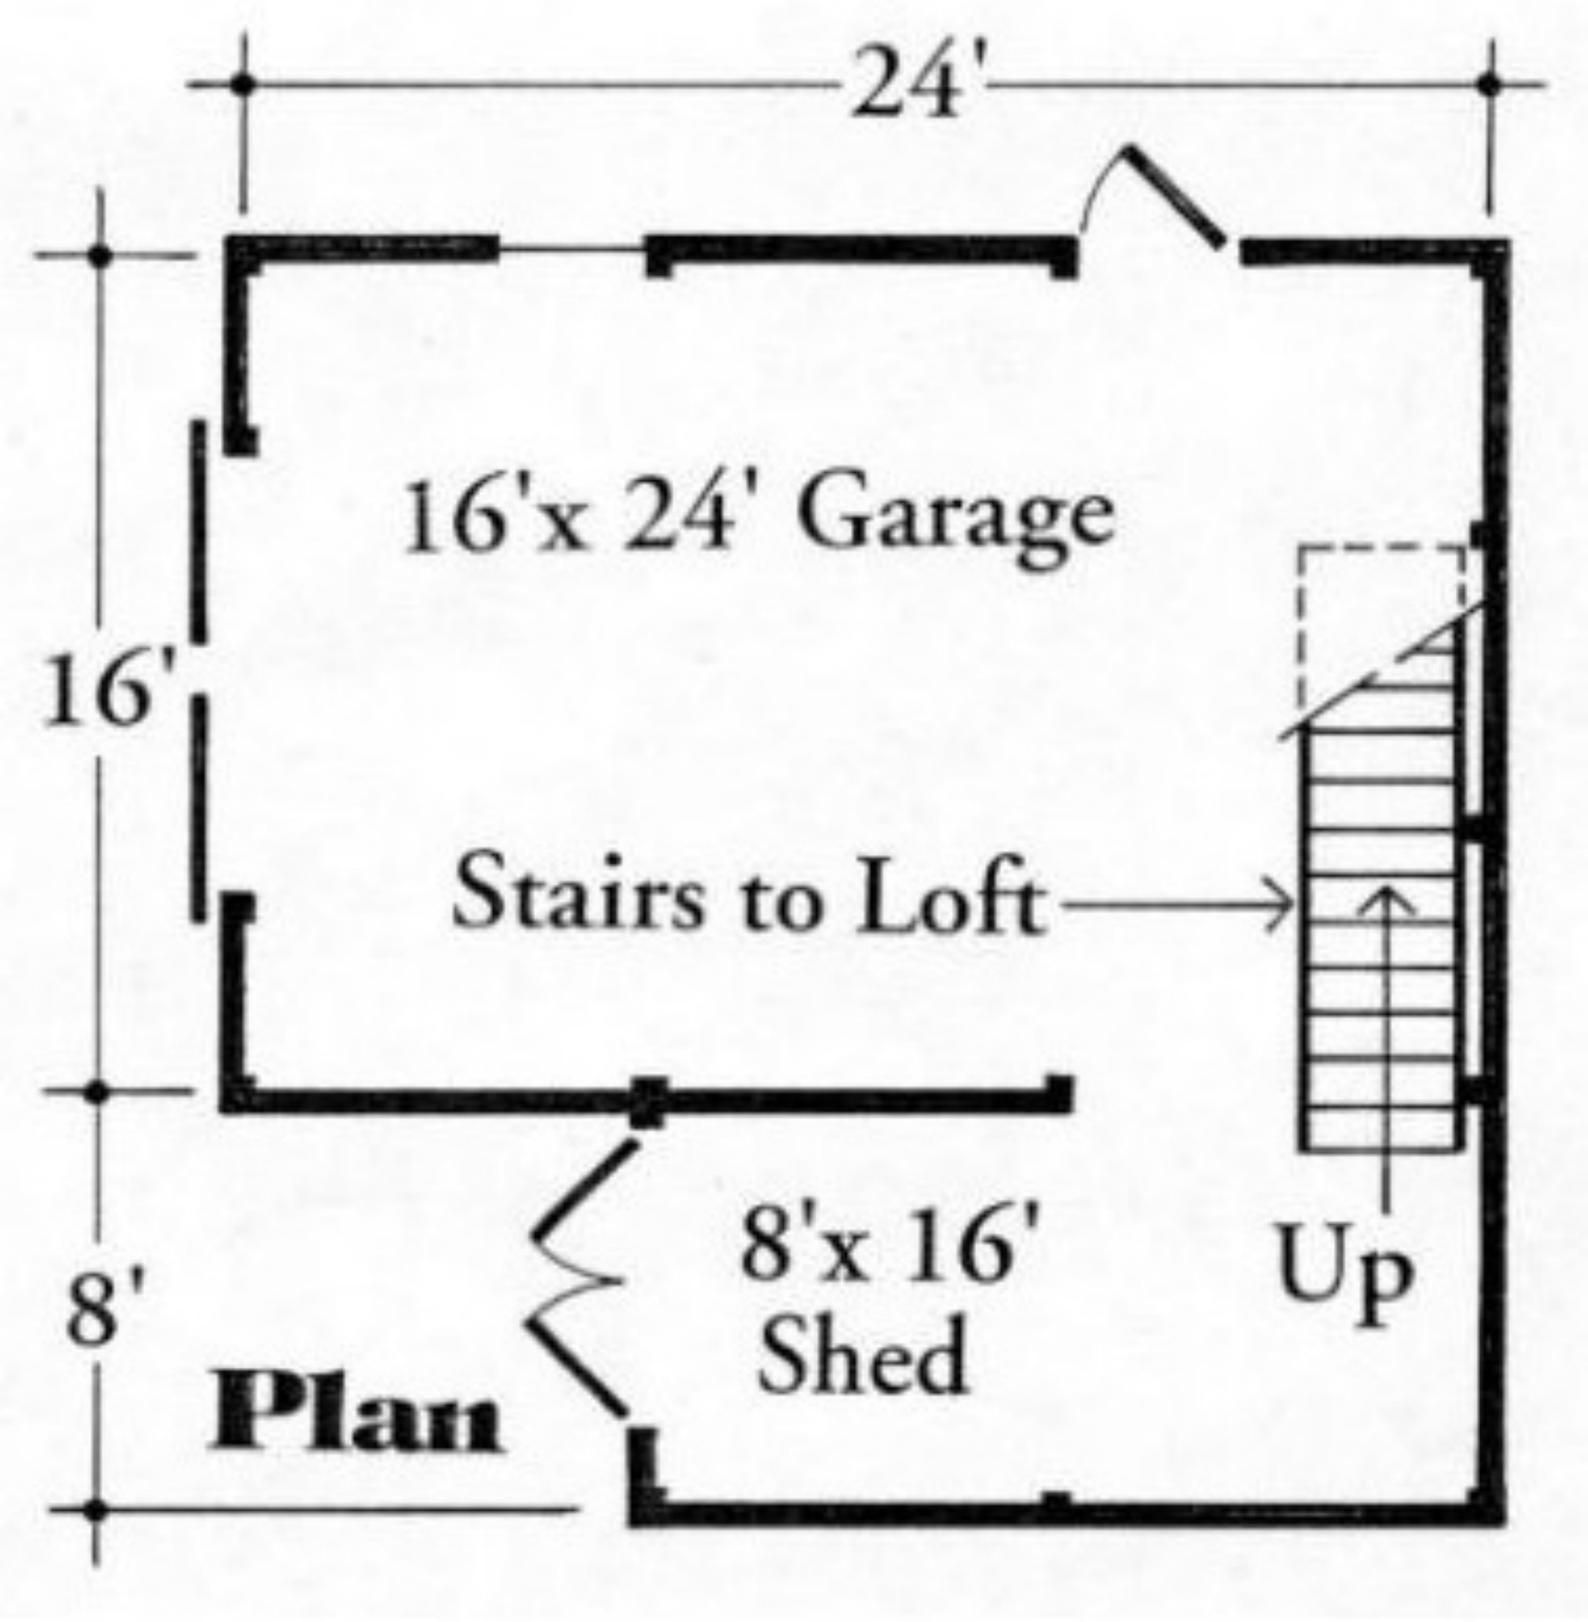 3 OneCar Garage Plans with Lofts Three Different Sets